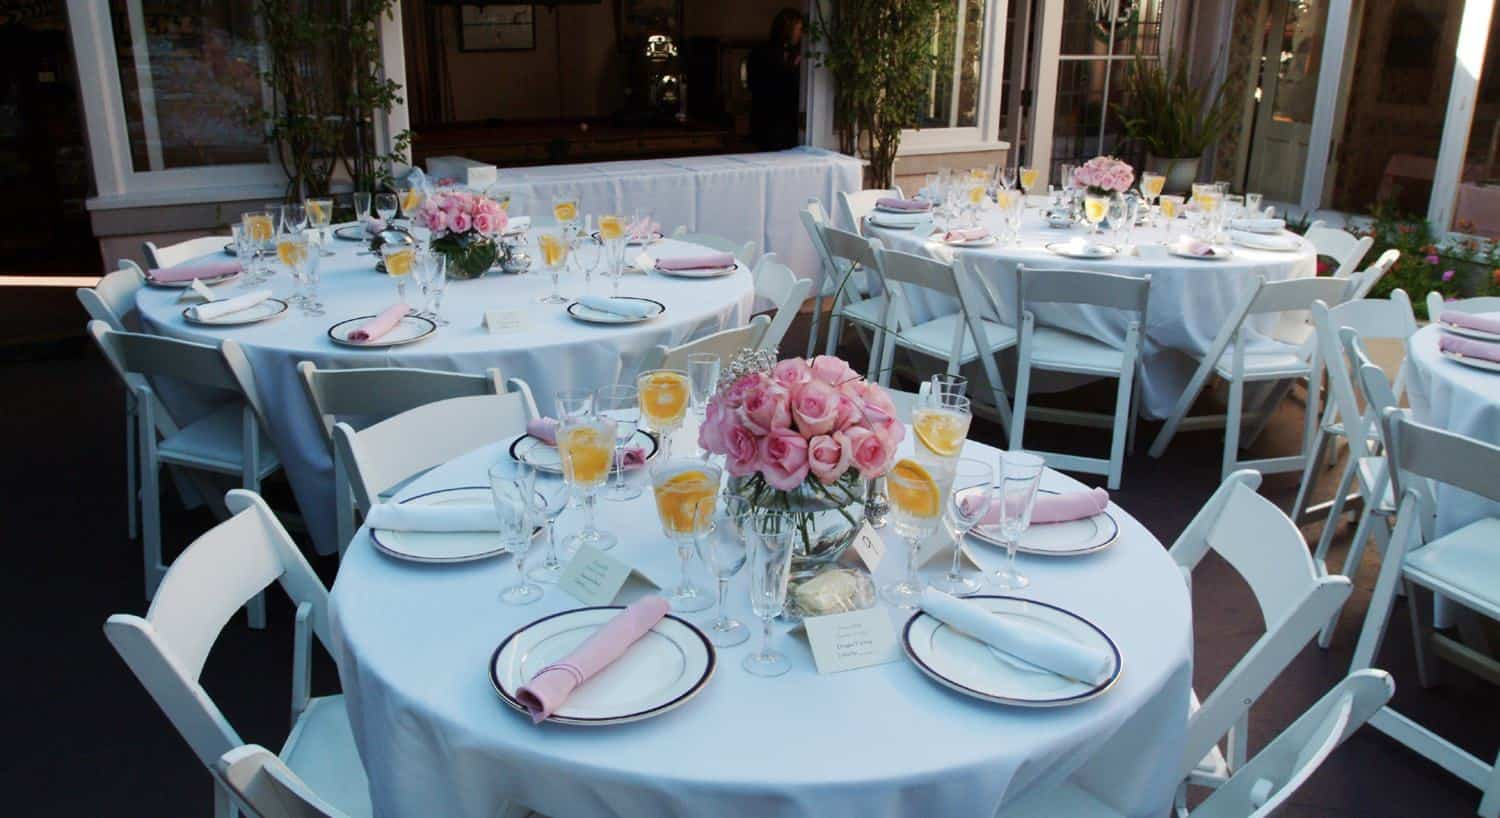 White round tables and chairs set with white plates, pink napkins and flowers for a wedding